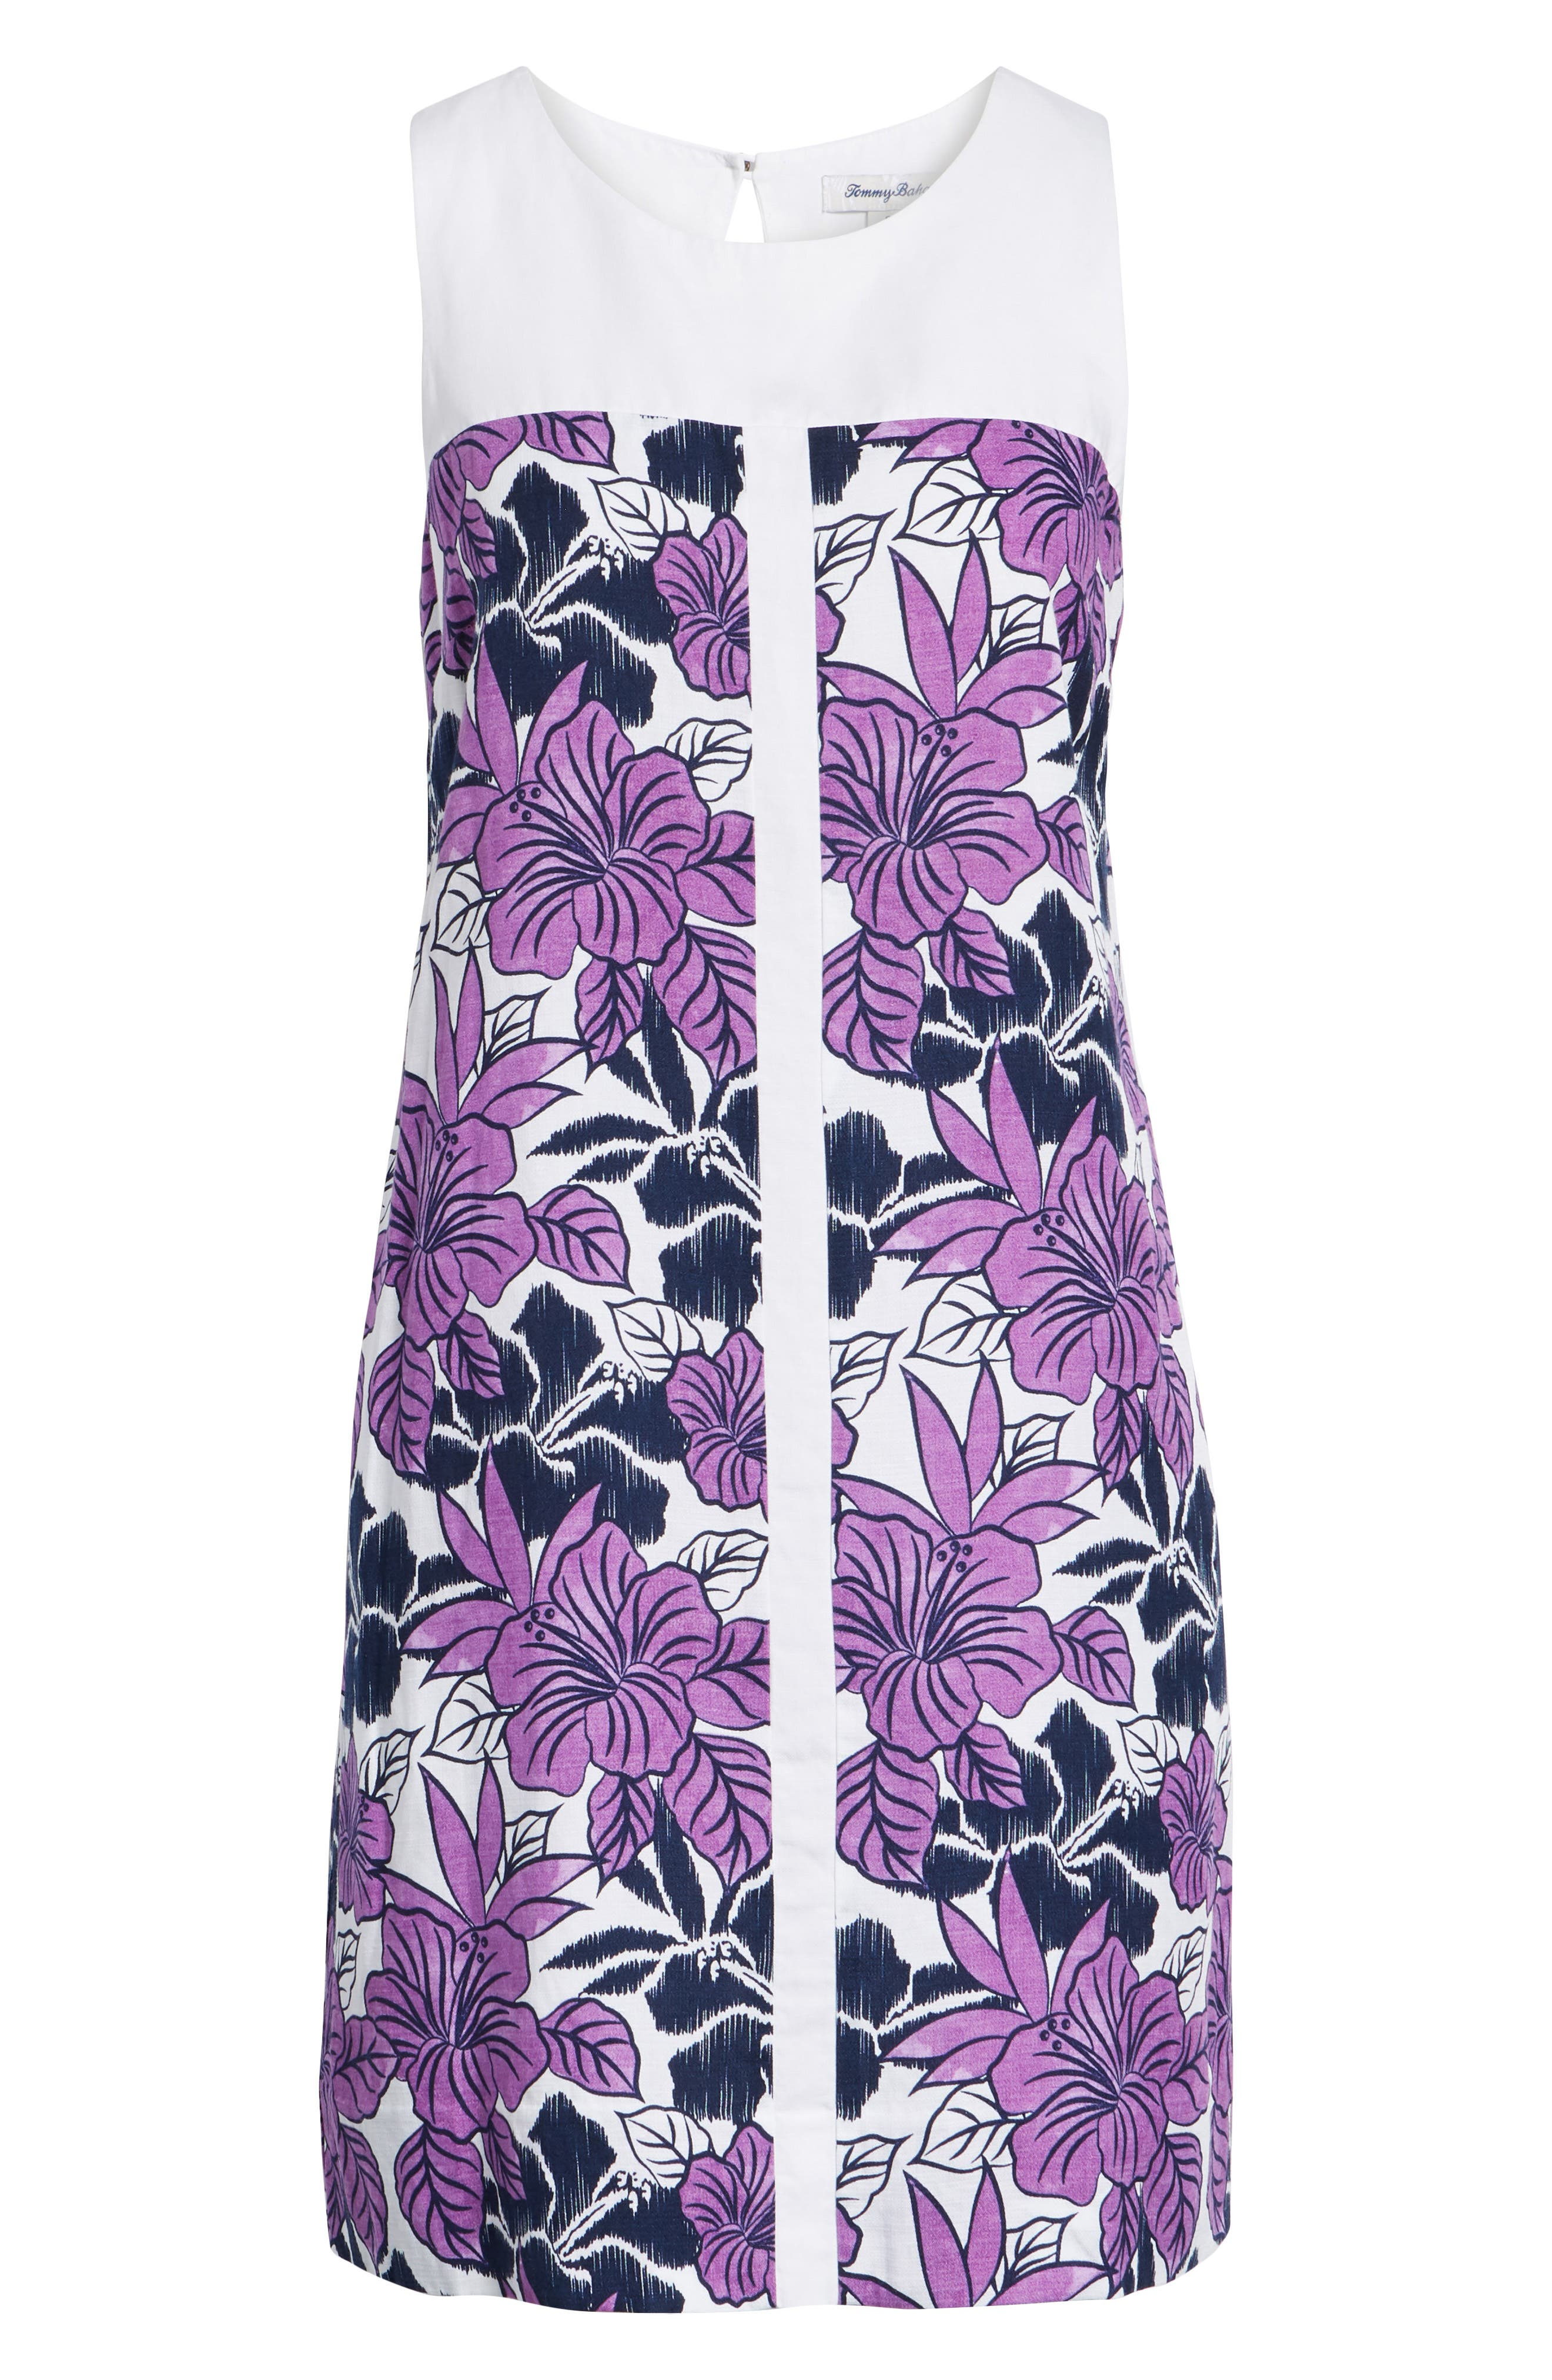 Blissful Blooms Shift Dress,                             Alternate thumbnail 7, color,                             VIVID PURPLE